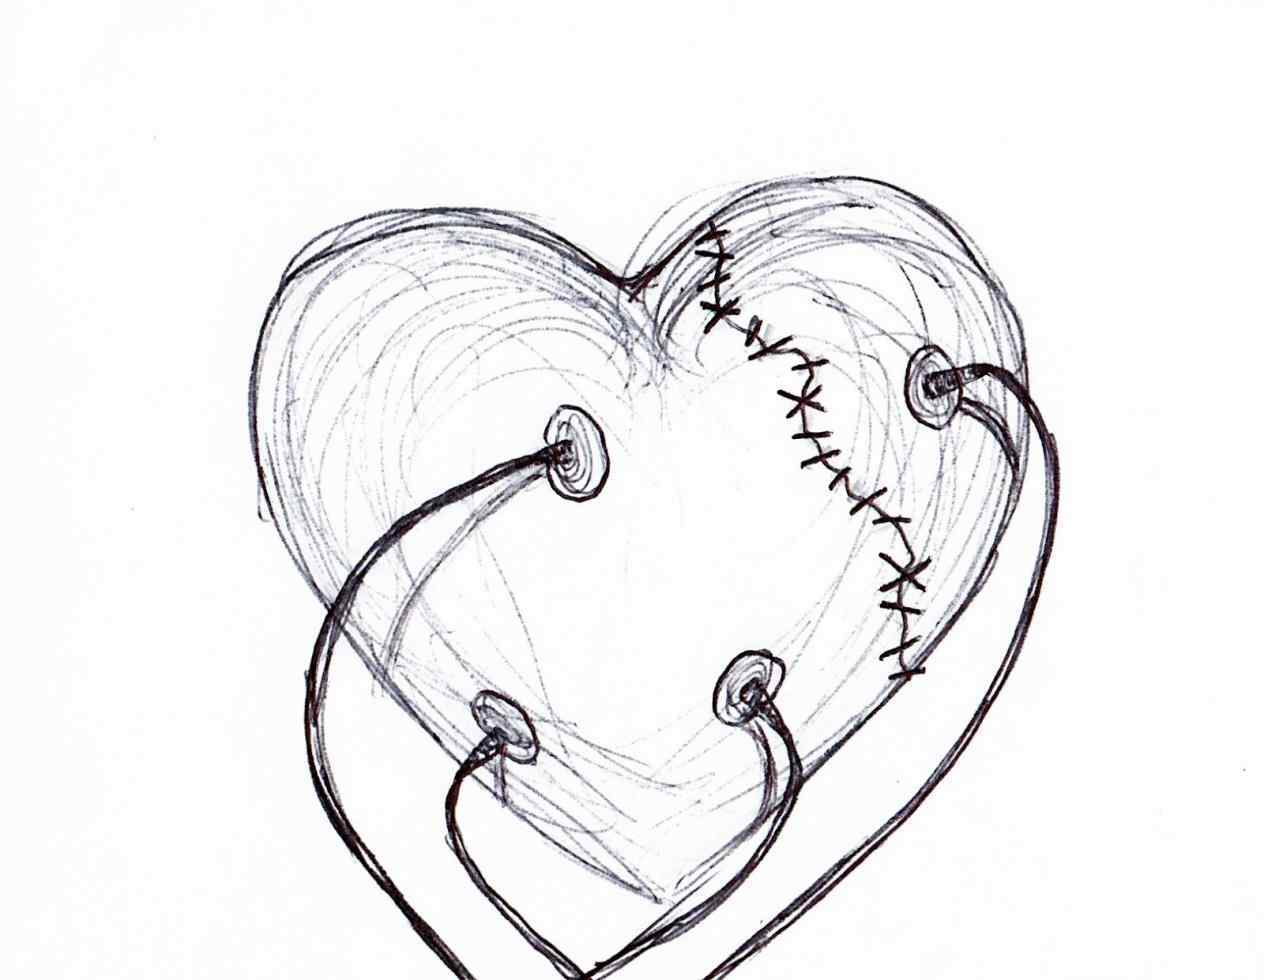 1264x980 Tattoo Ideas Figurative And Heart Music Drawings Drawing